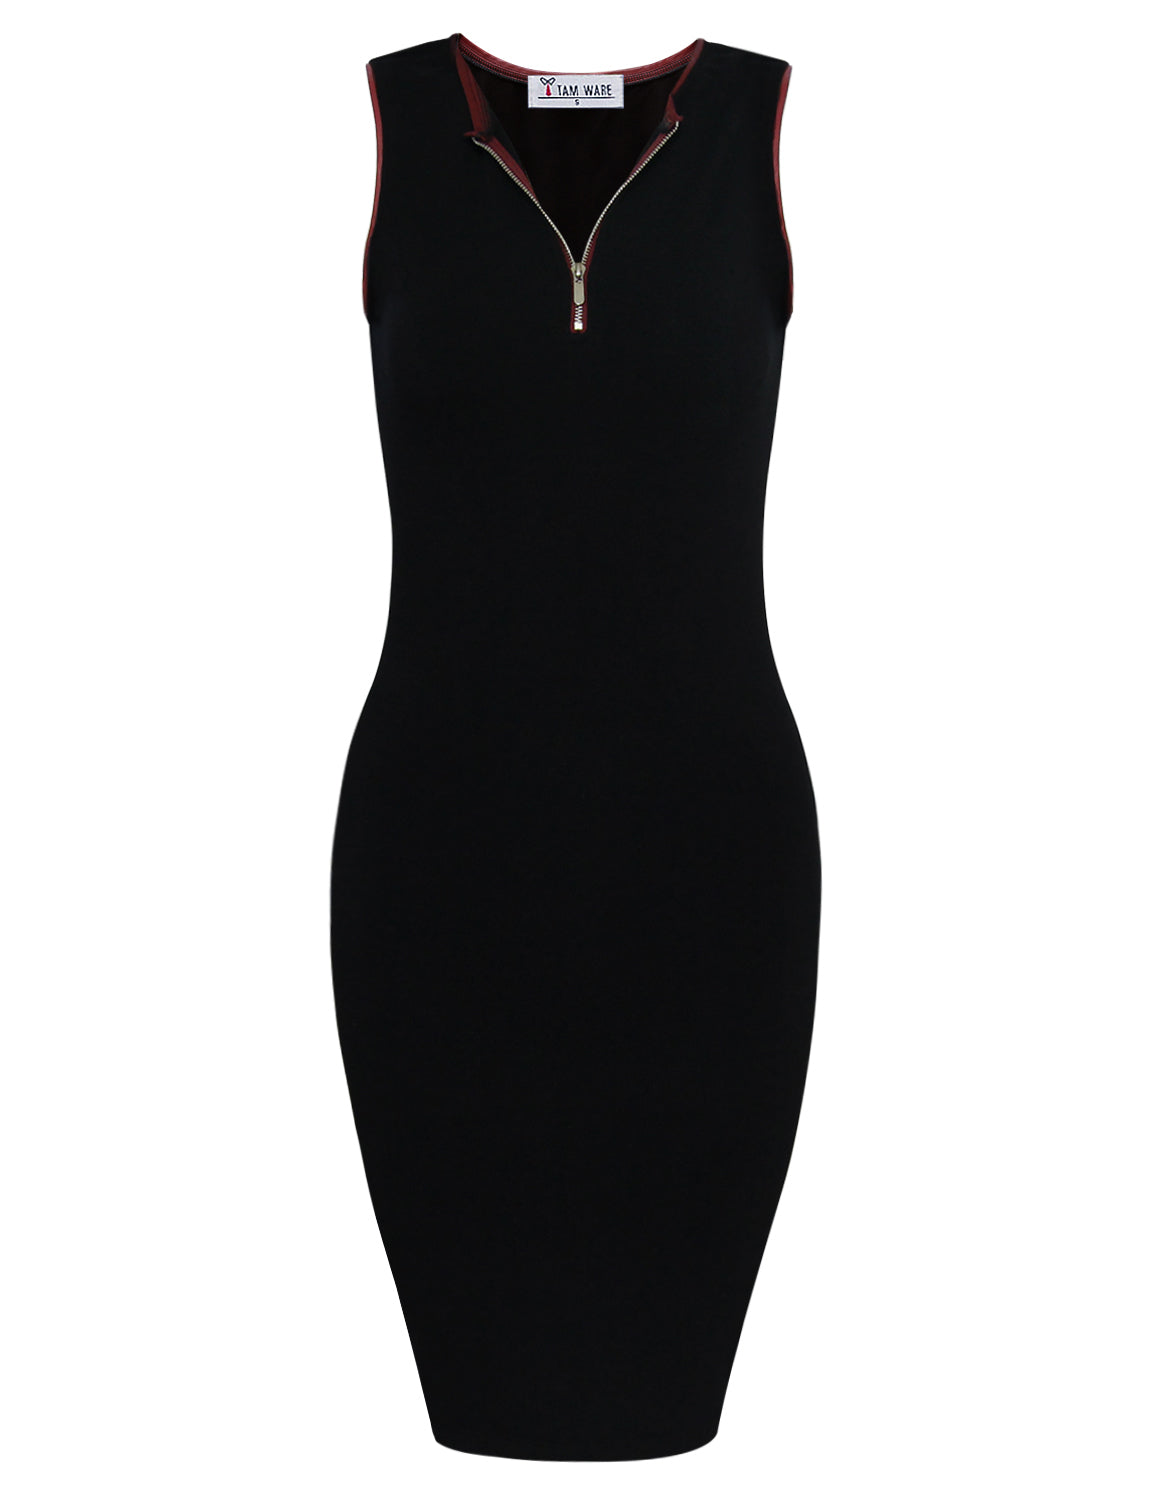 TAM WARE Women's Stylish Front Zip Sleeveless Bodycon Dress